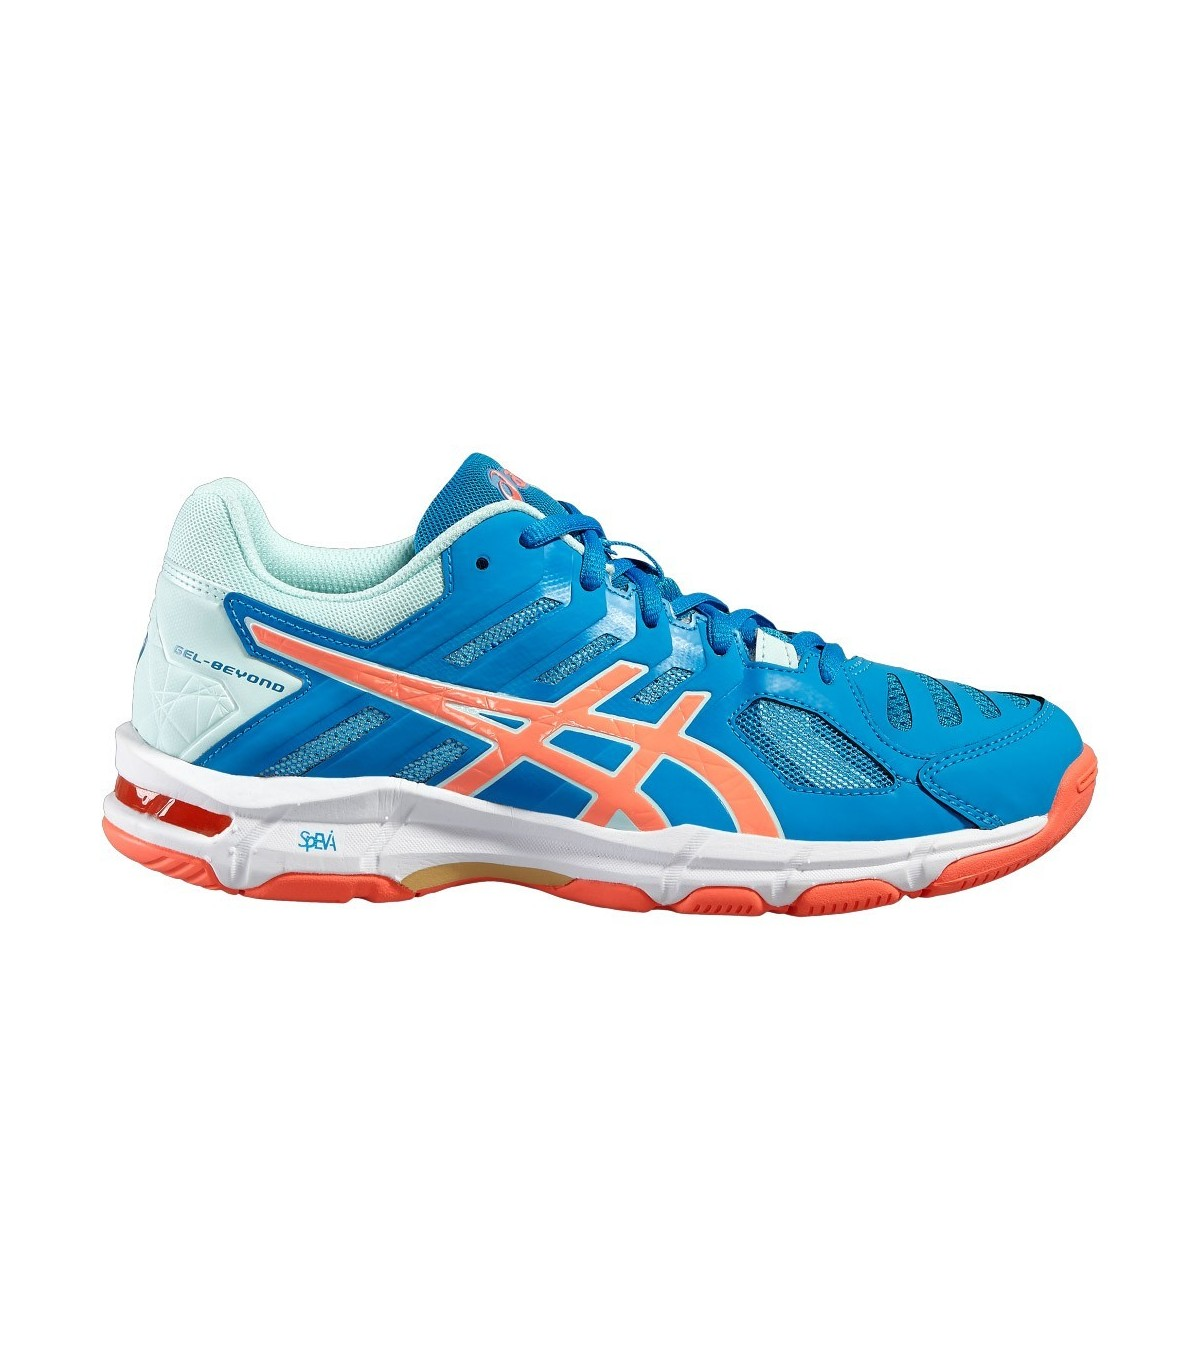 Chaussures Asics Gel Beyond blanches femme